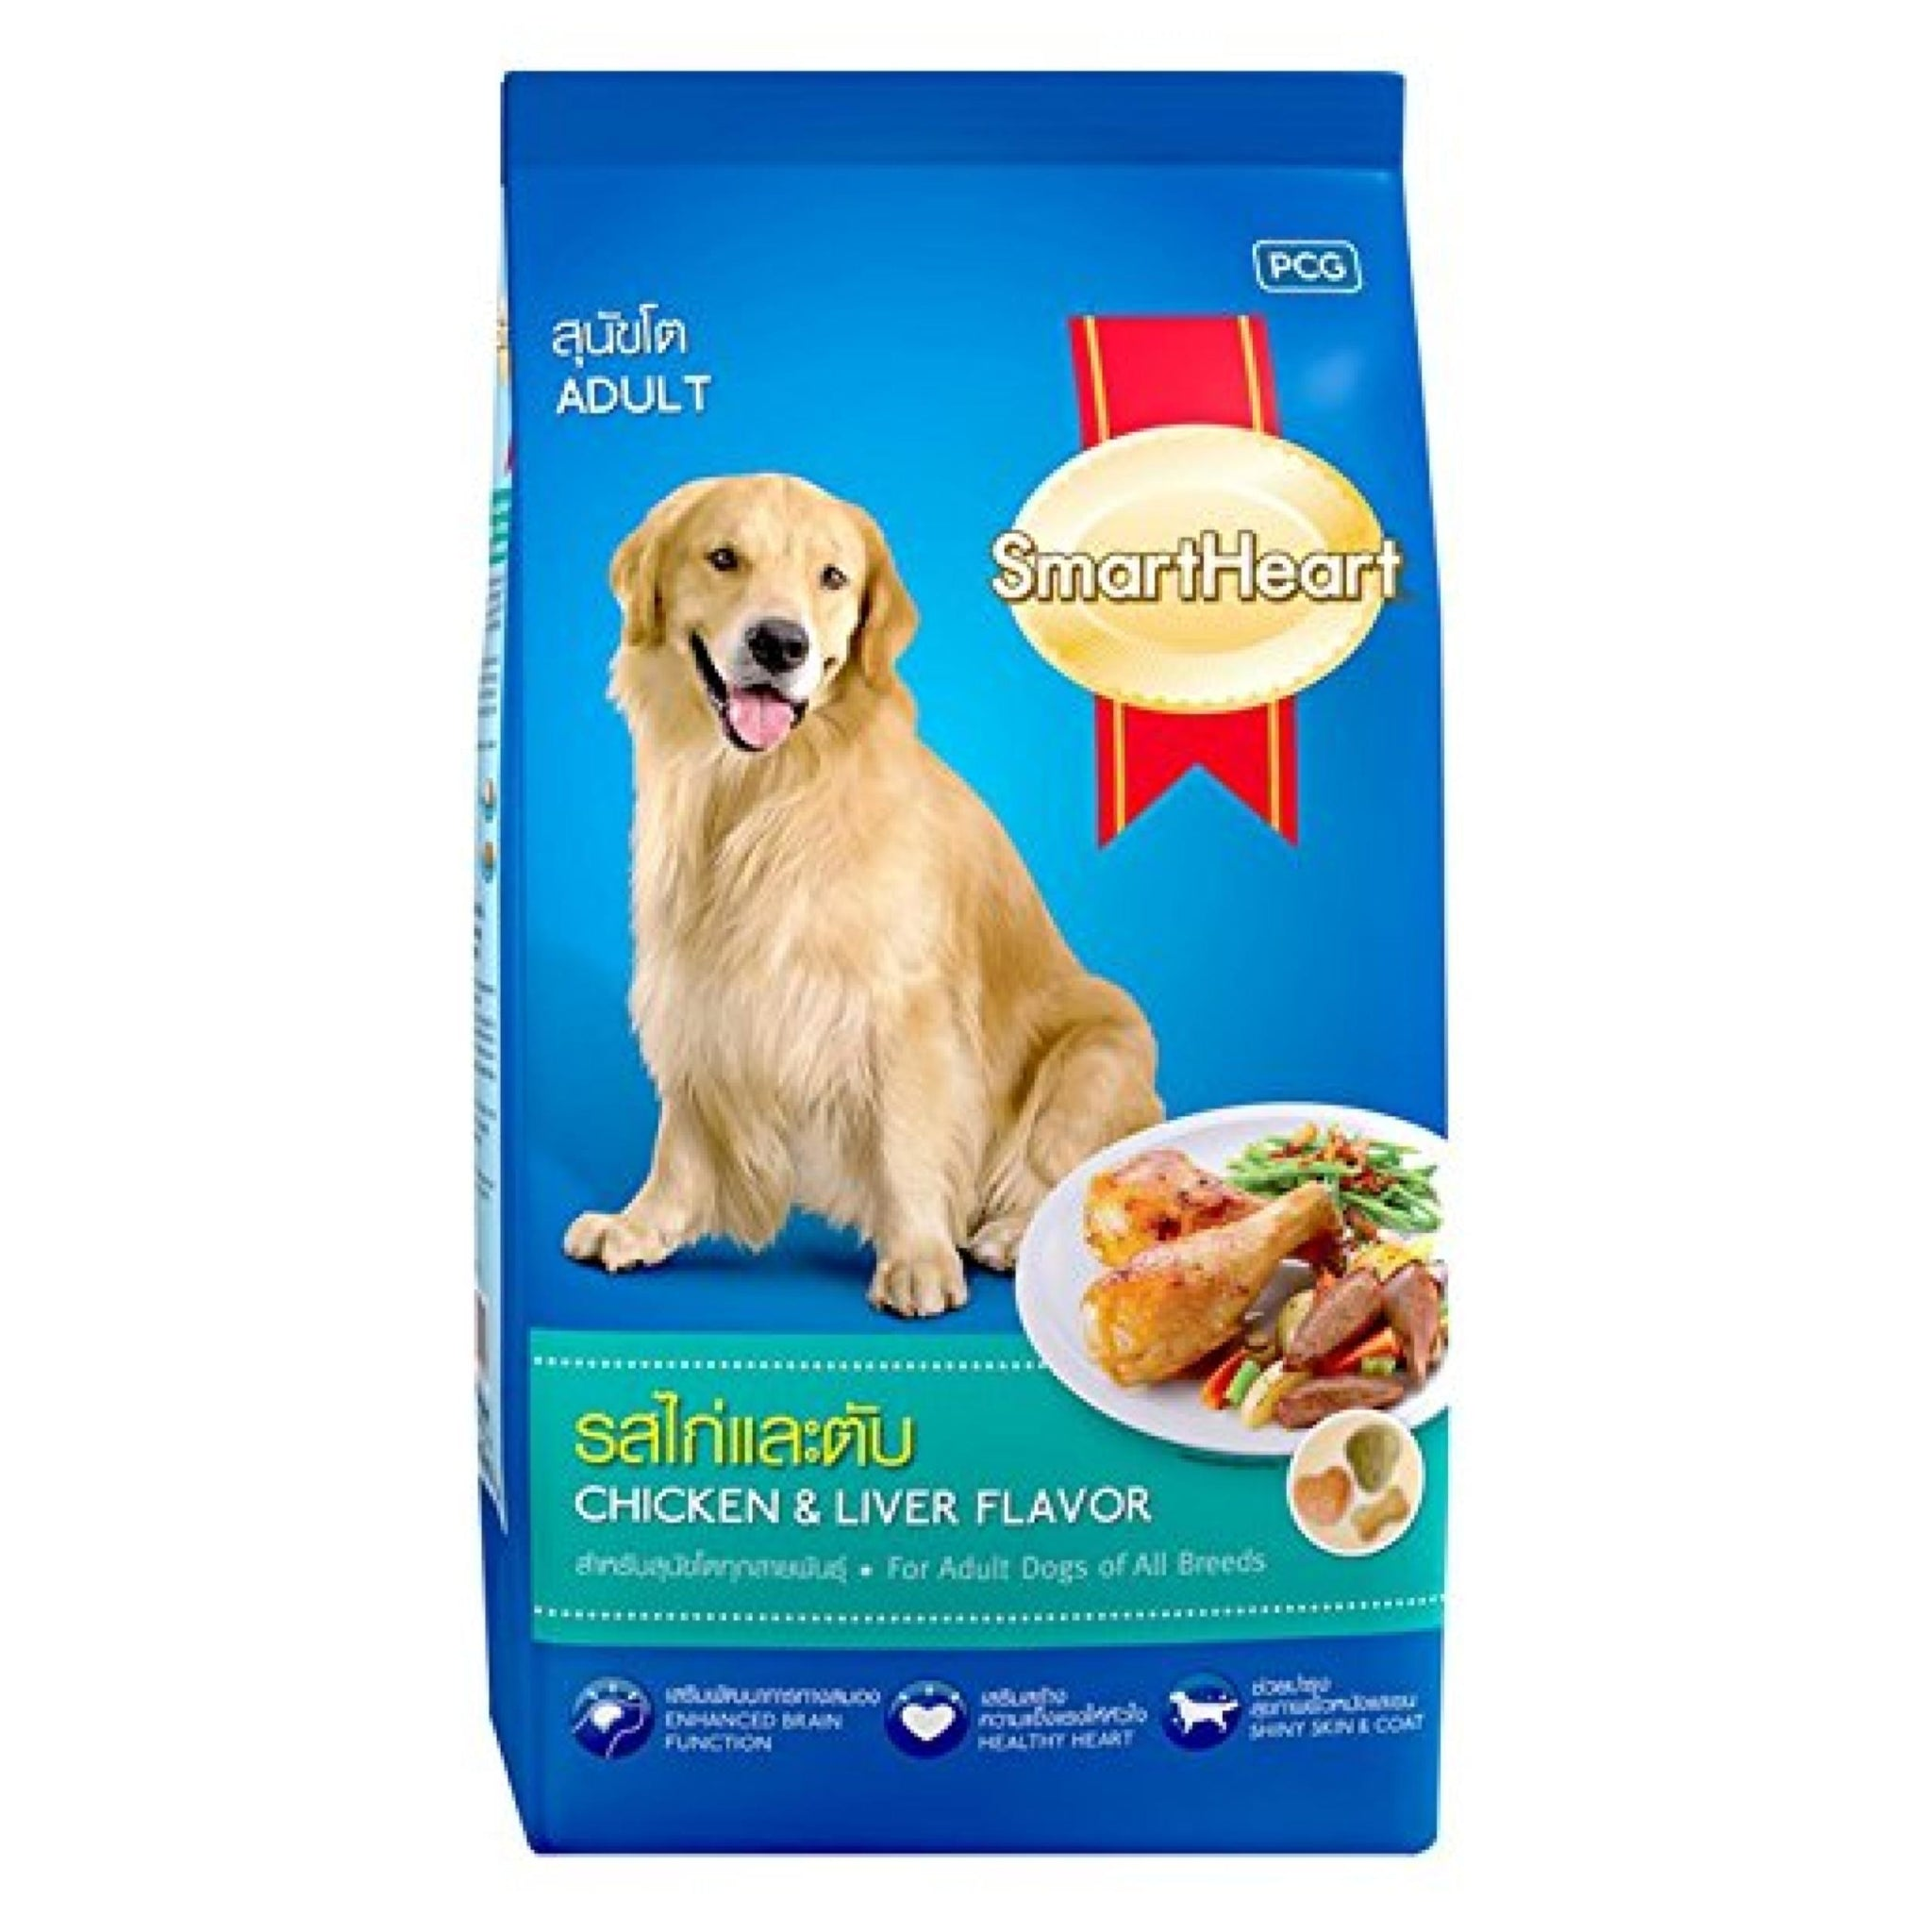 Smart Heart Chicken and Liver Adult Dog Food - Poochles